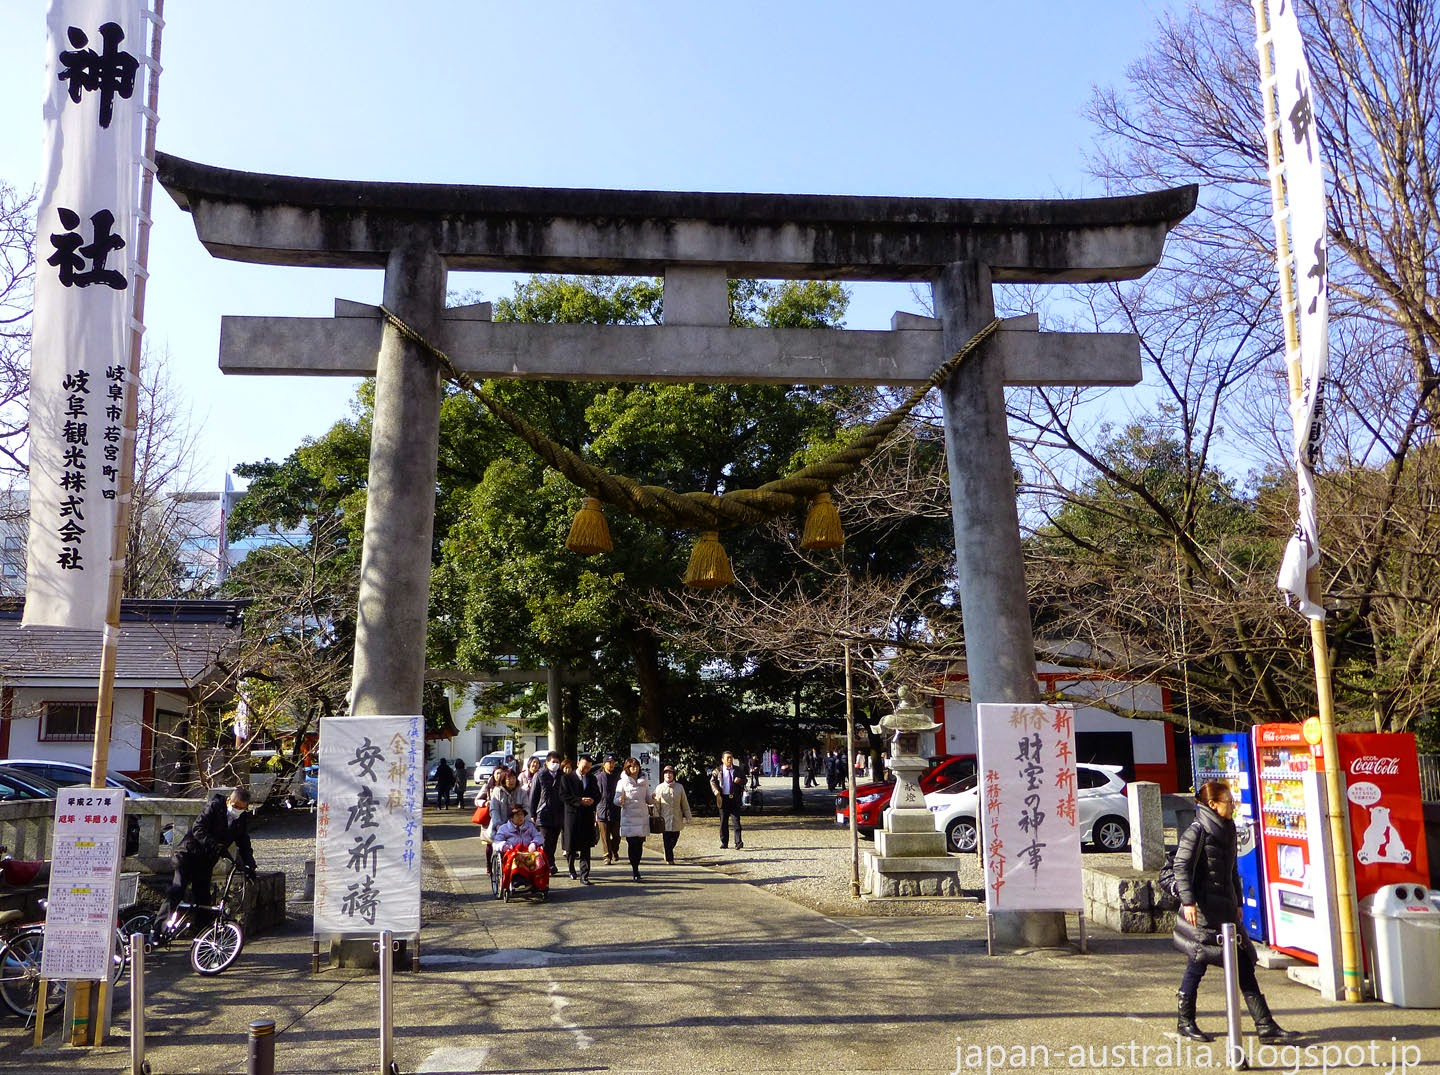 the Main Shrine Gate at Kogane Jinja